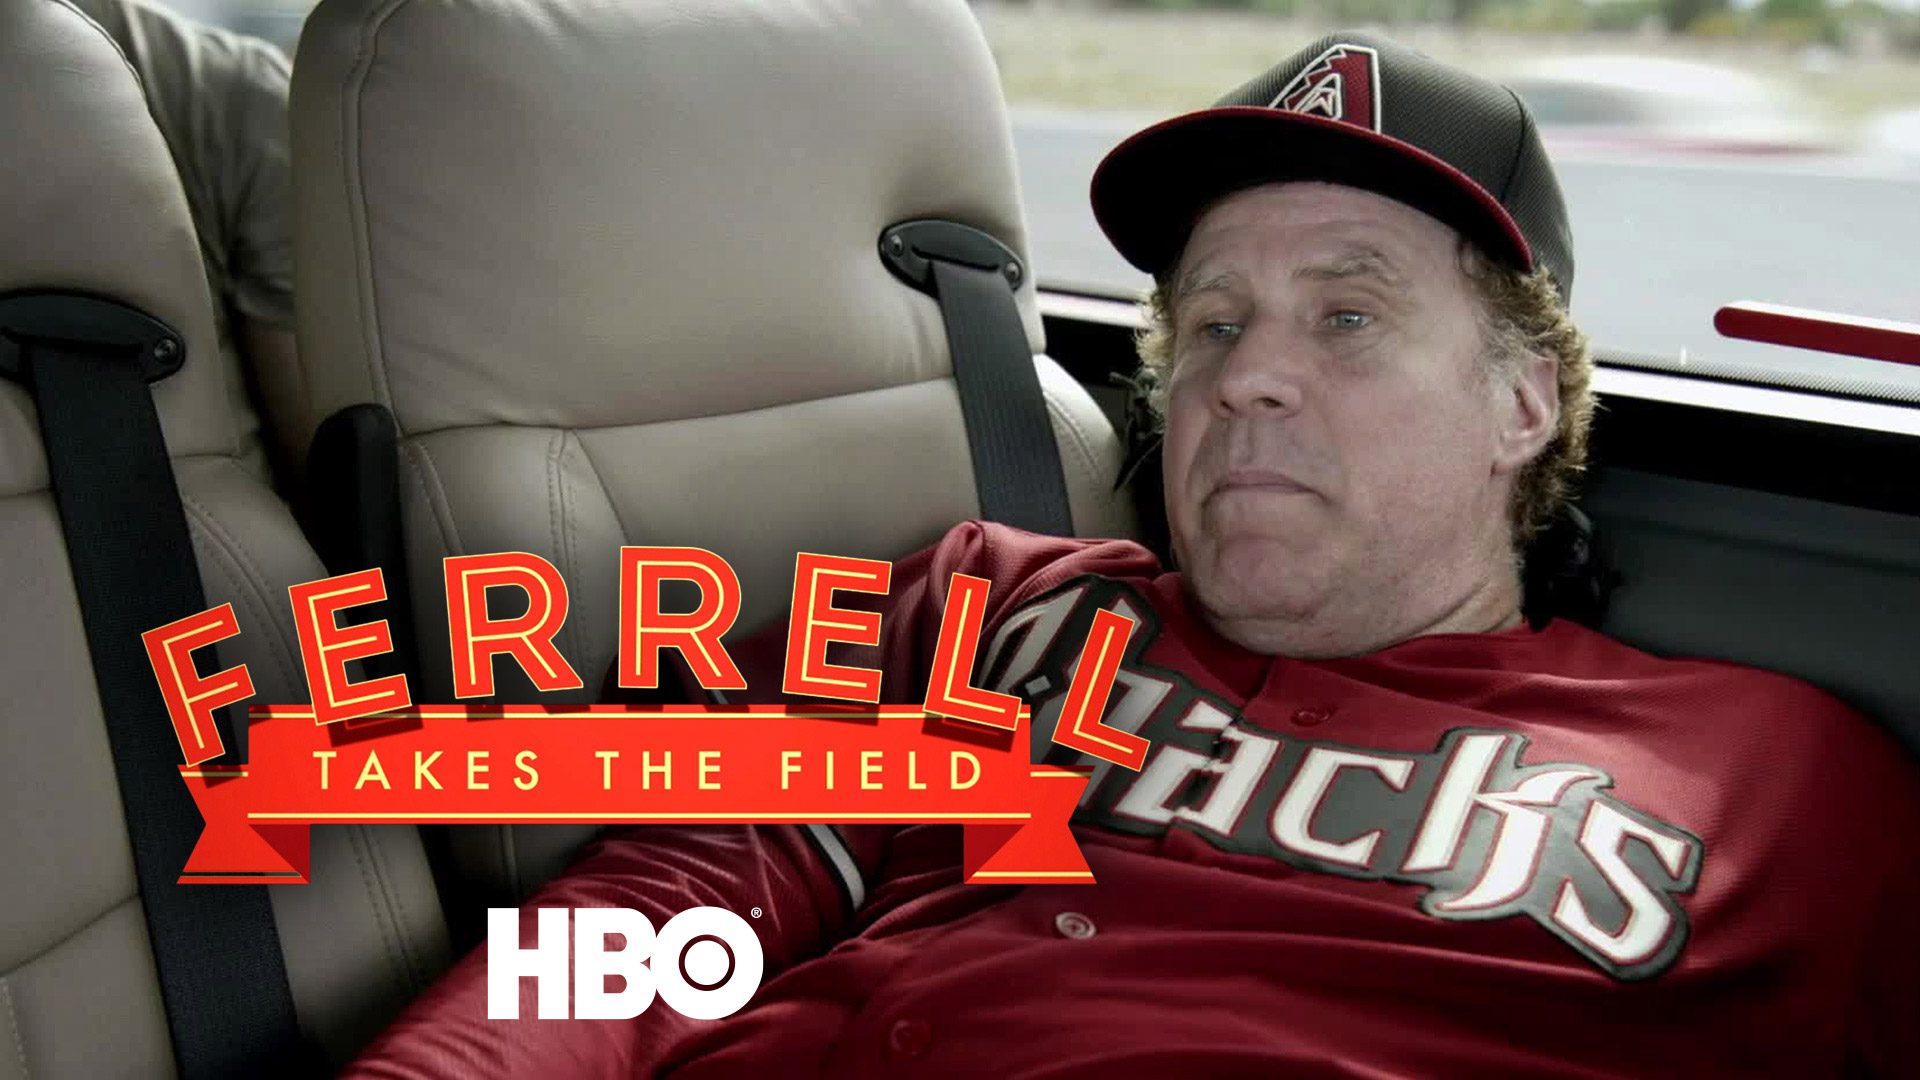 Ferrell Takes the Field